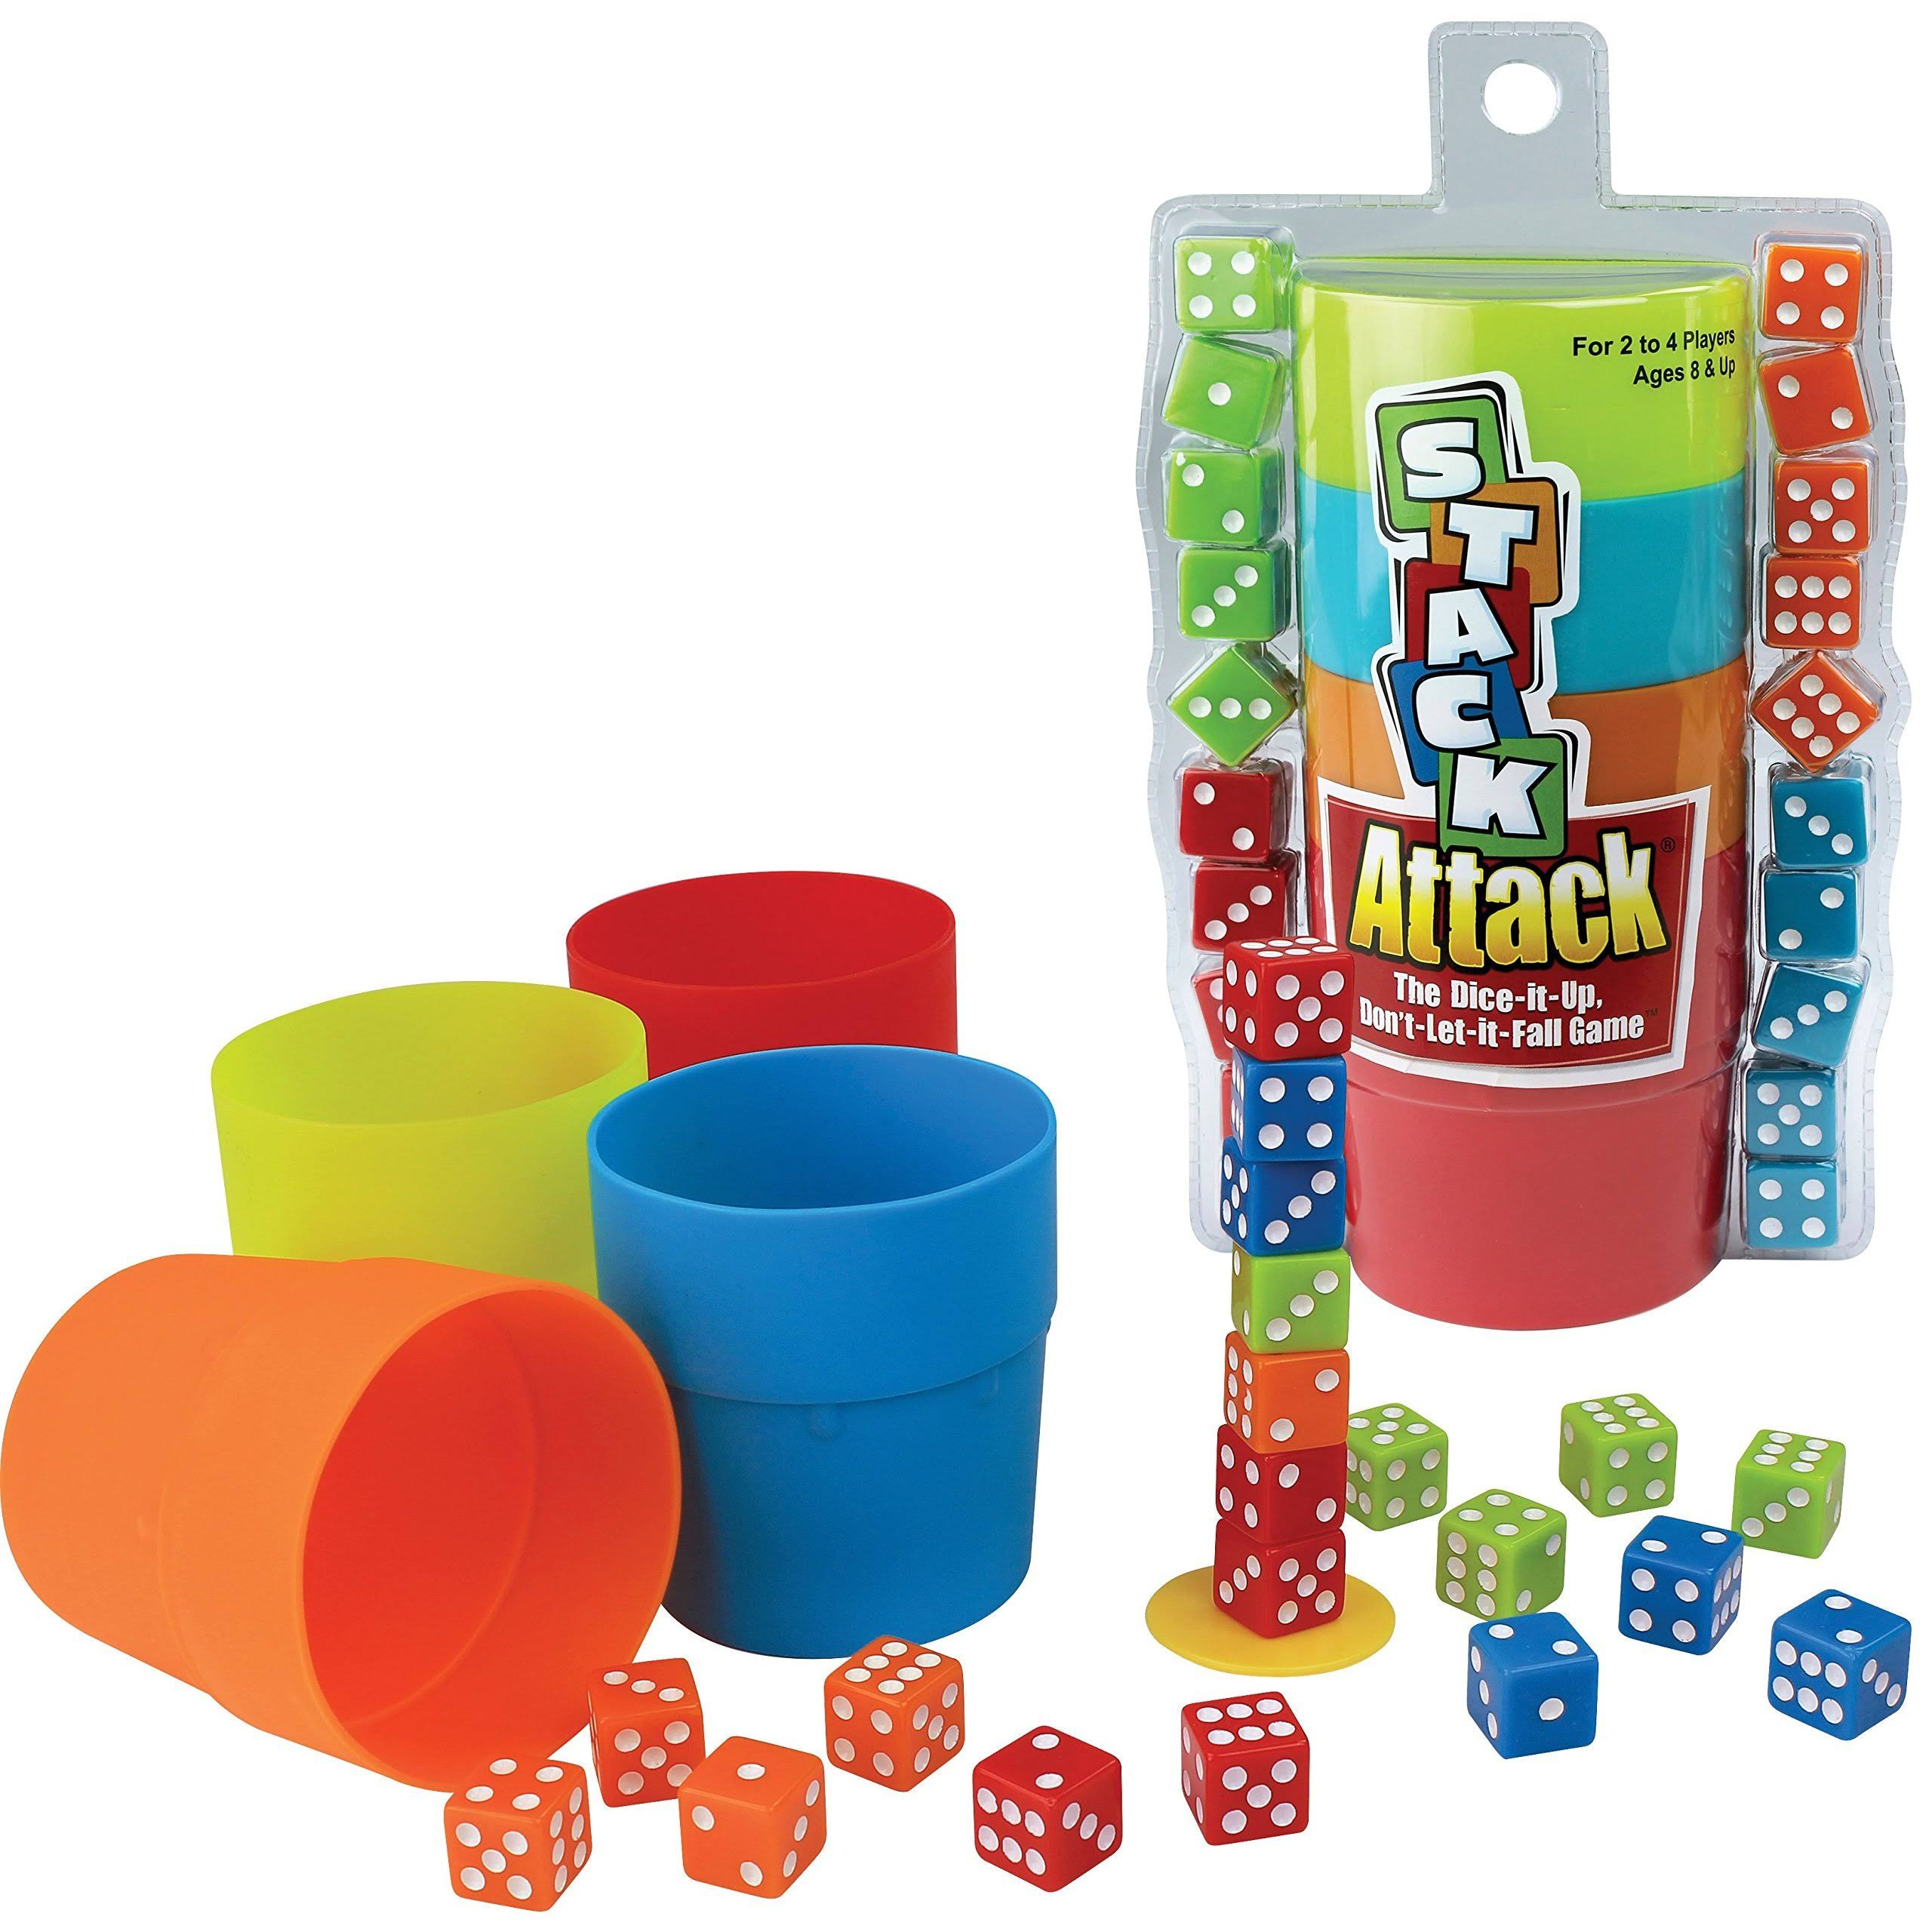 Patch Products Stack Attack Game